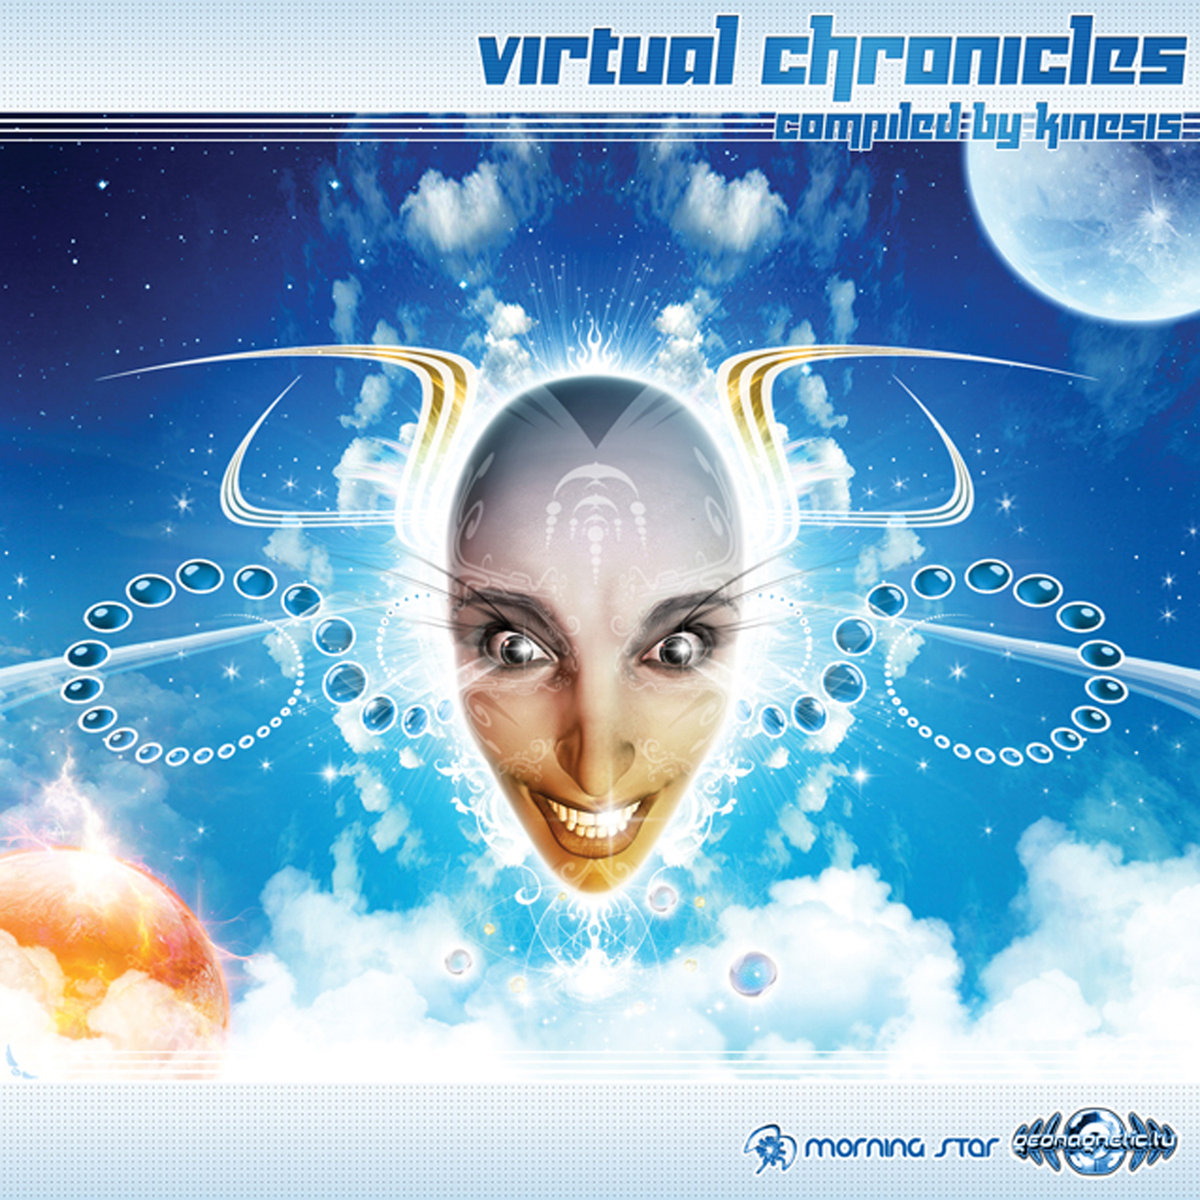 Northern Lights - Out @ 'Various Artists - Virtual Chronicles (Compiled by Kinesis)' album (electronic, goa)